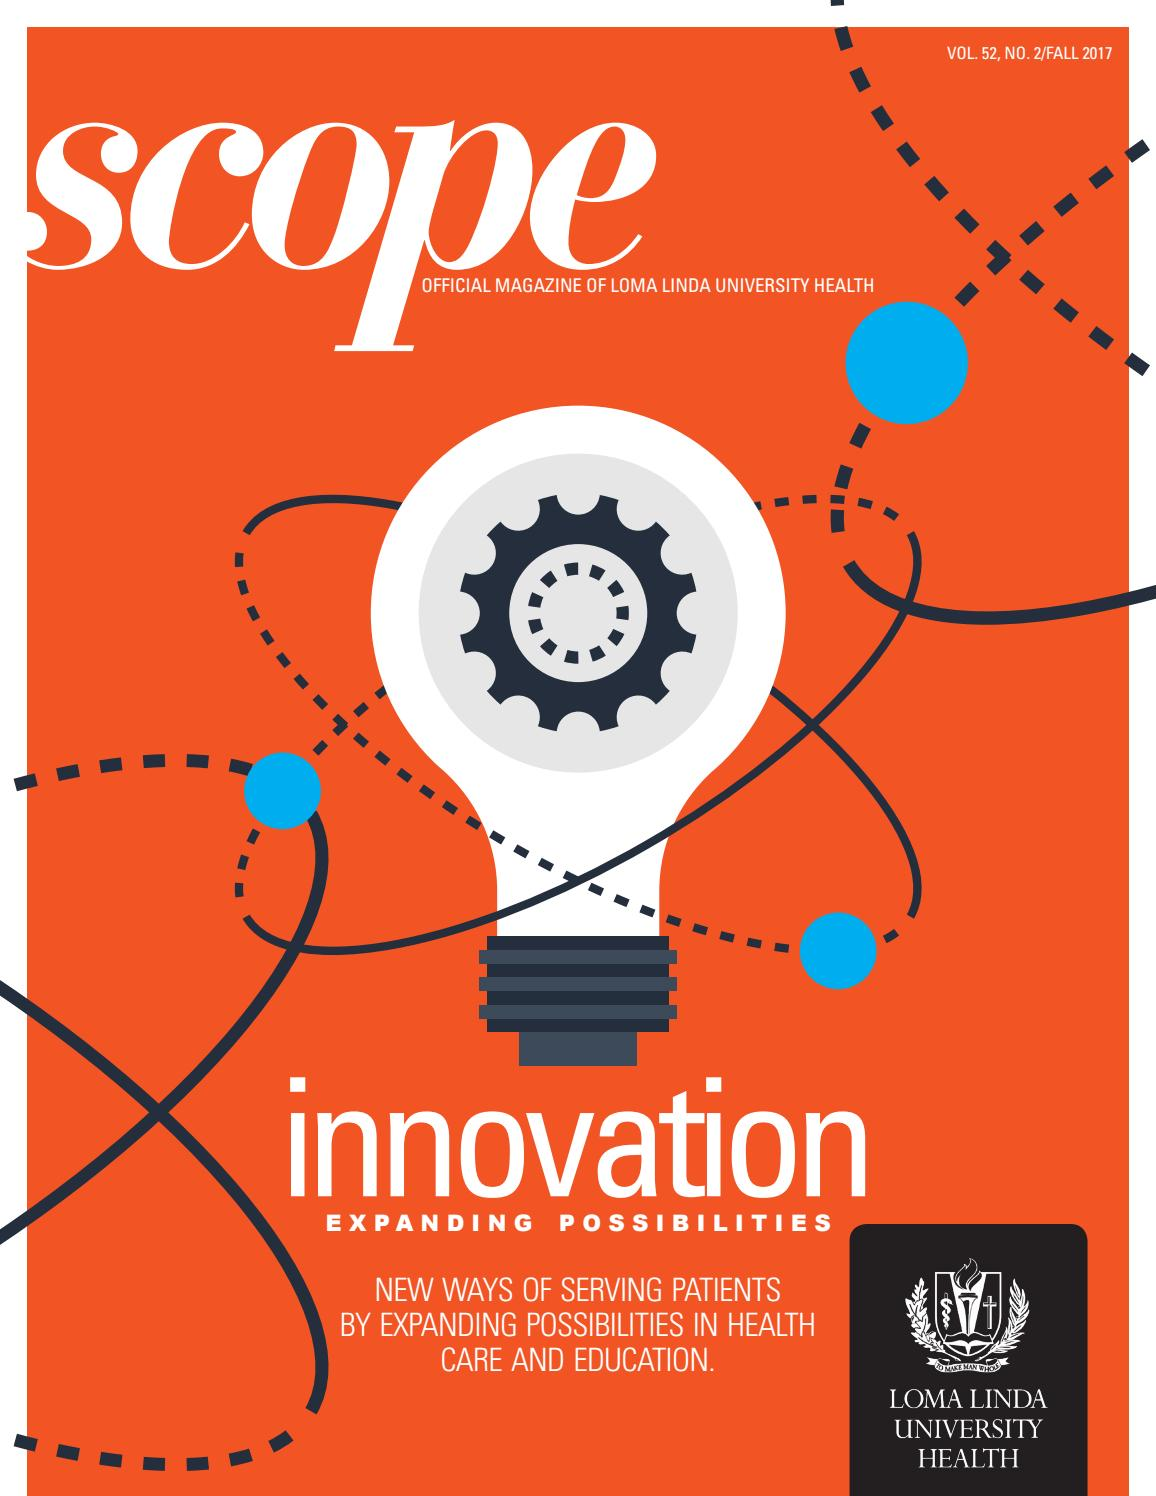 2017 fall scope by loma linda university health issuu xflitez Image collections